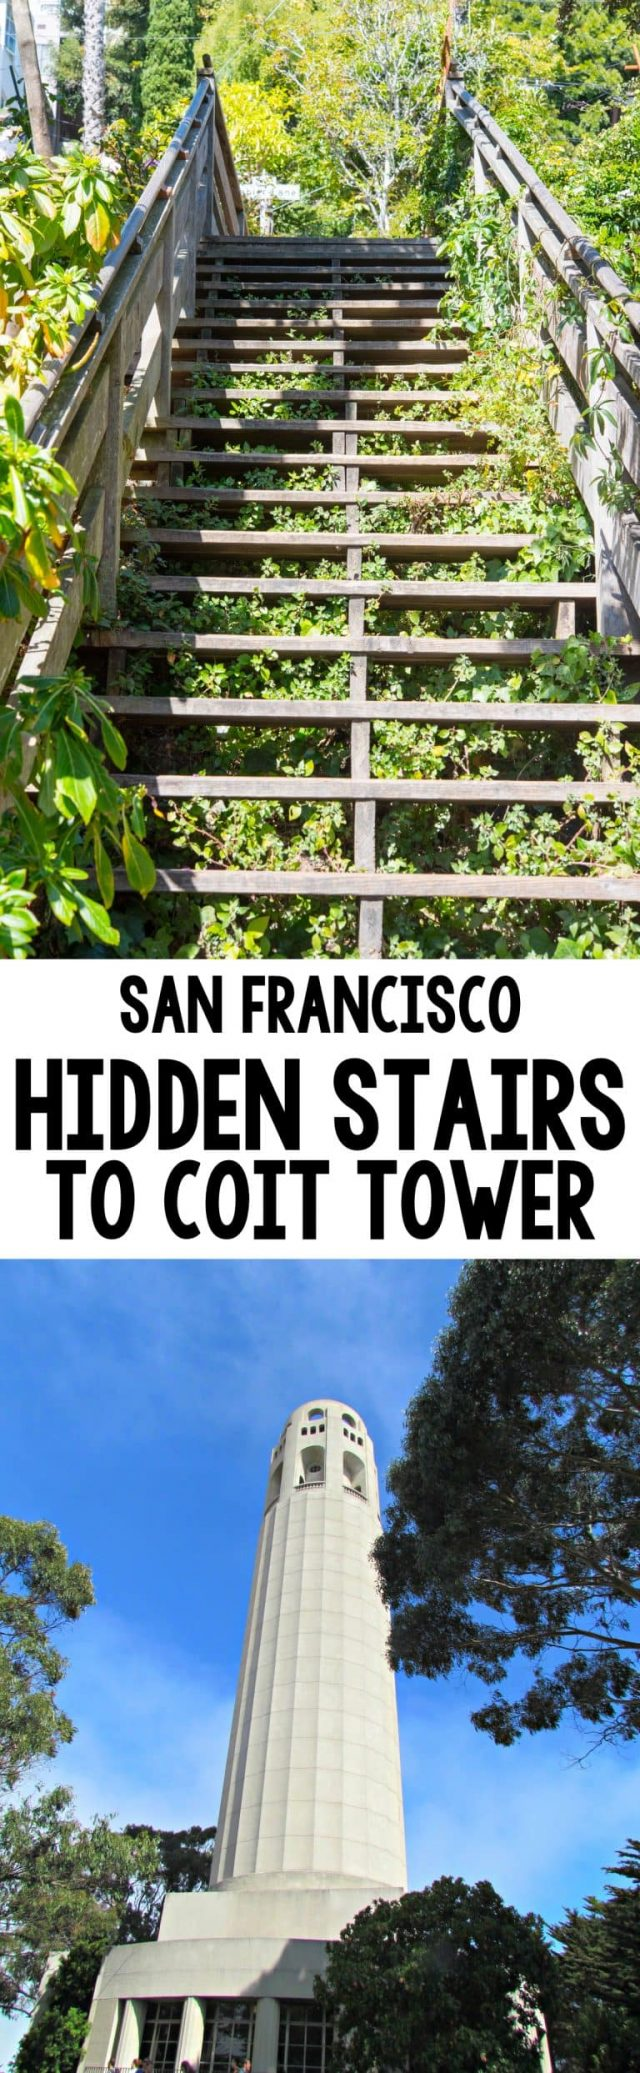 San Francisco Travel: Take the Hidden Steps to Coit Tower for gorgeous views and a nice workout. See the hidden homes and great views of the San Francisco Bay!